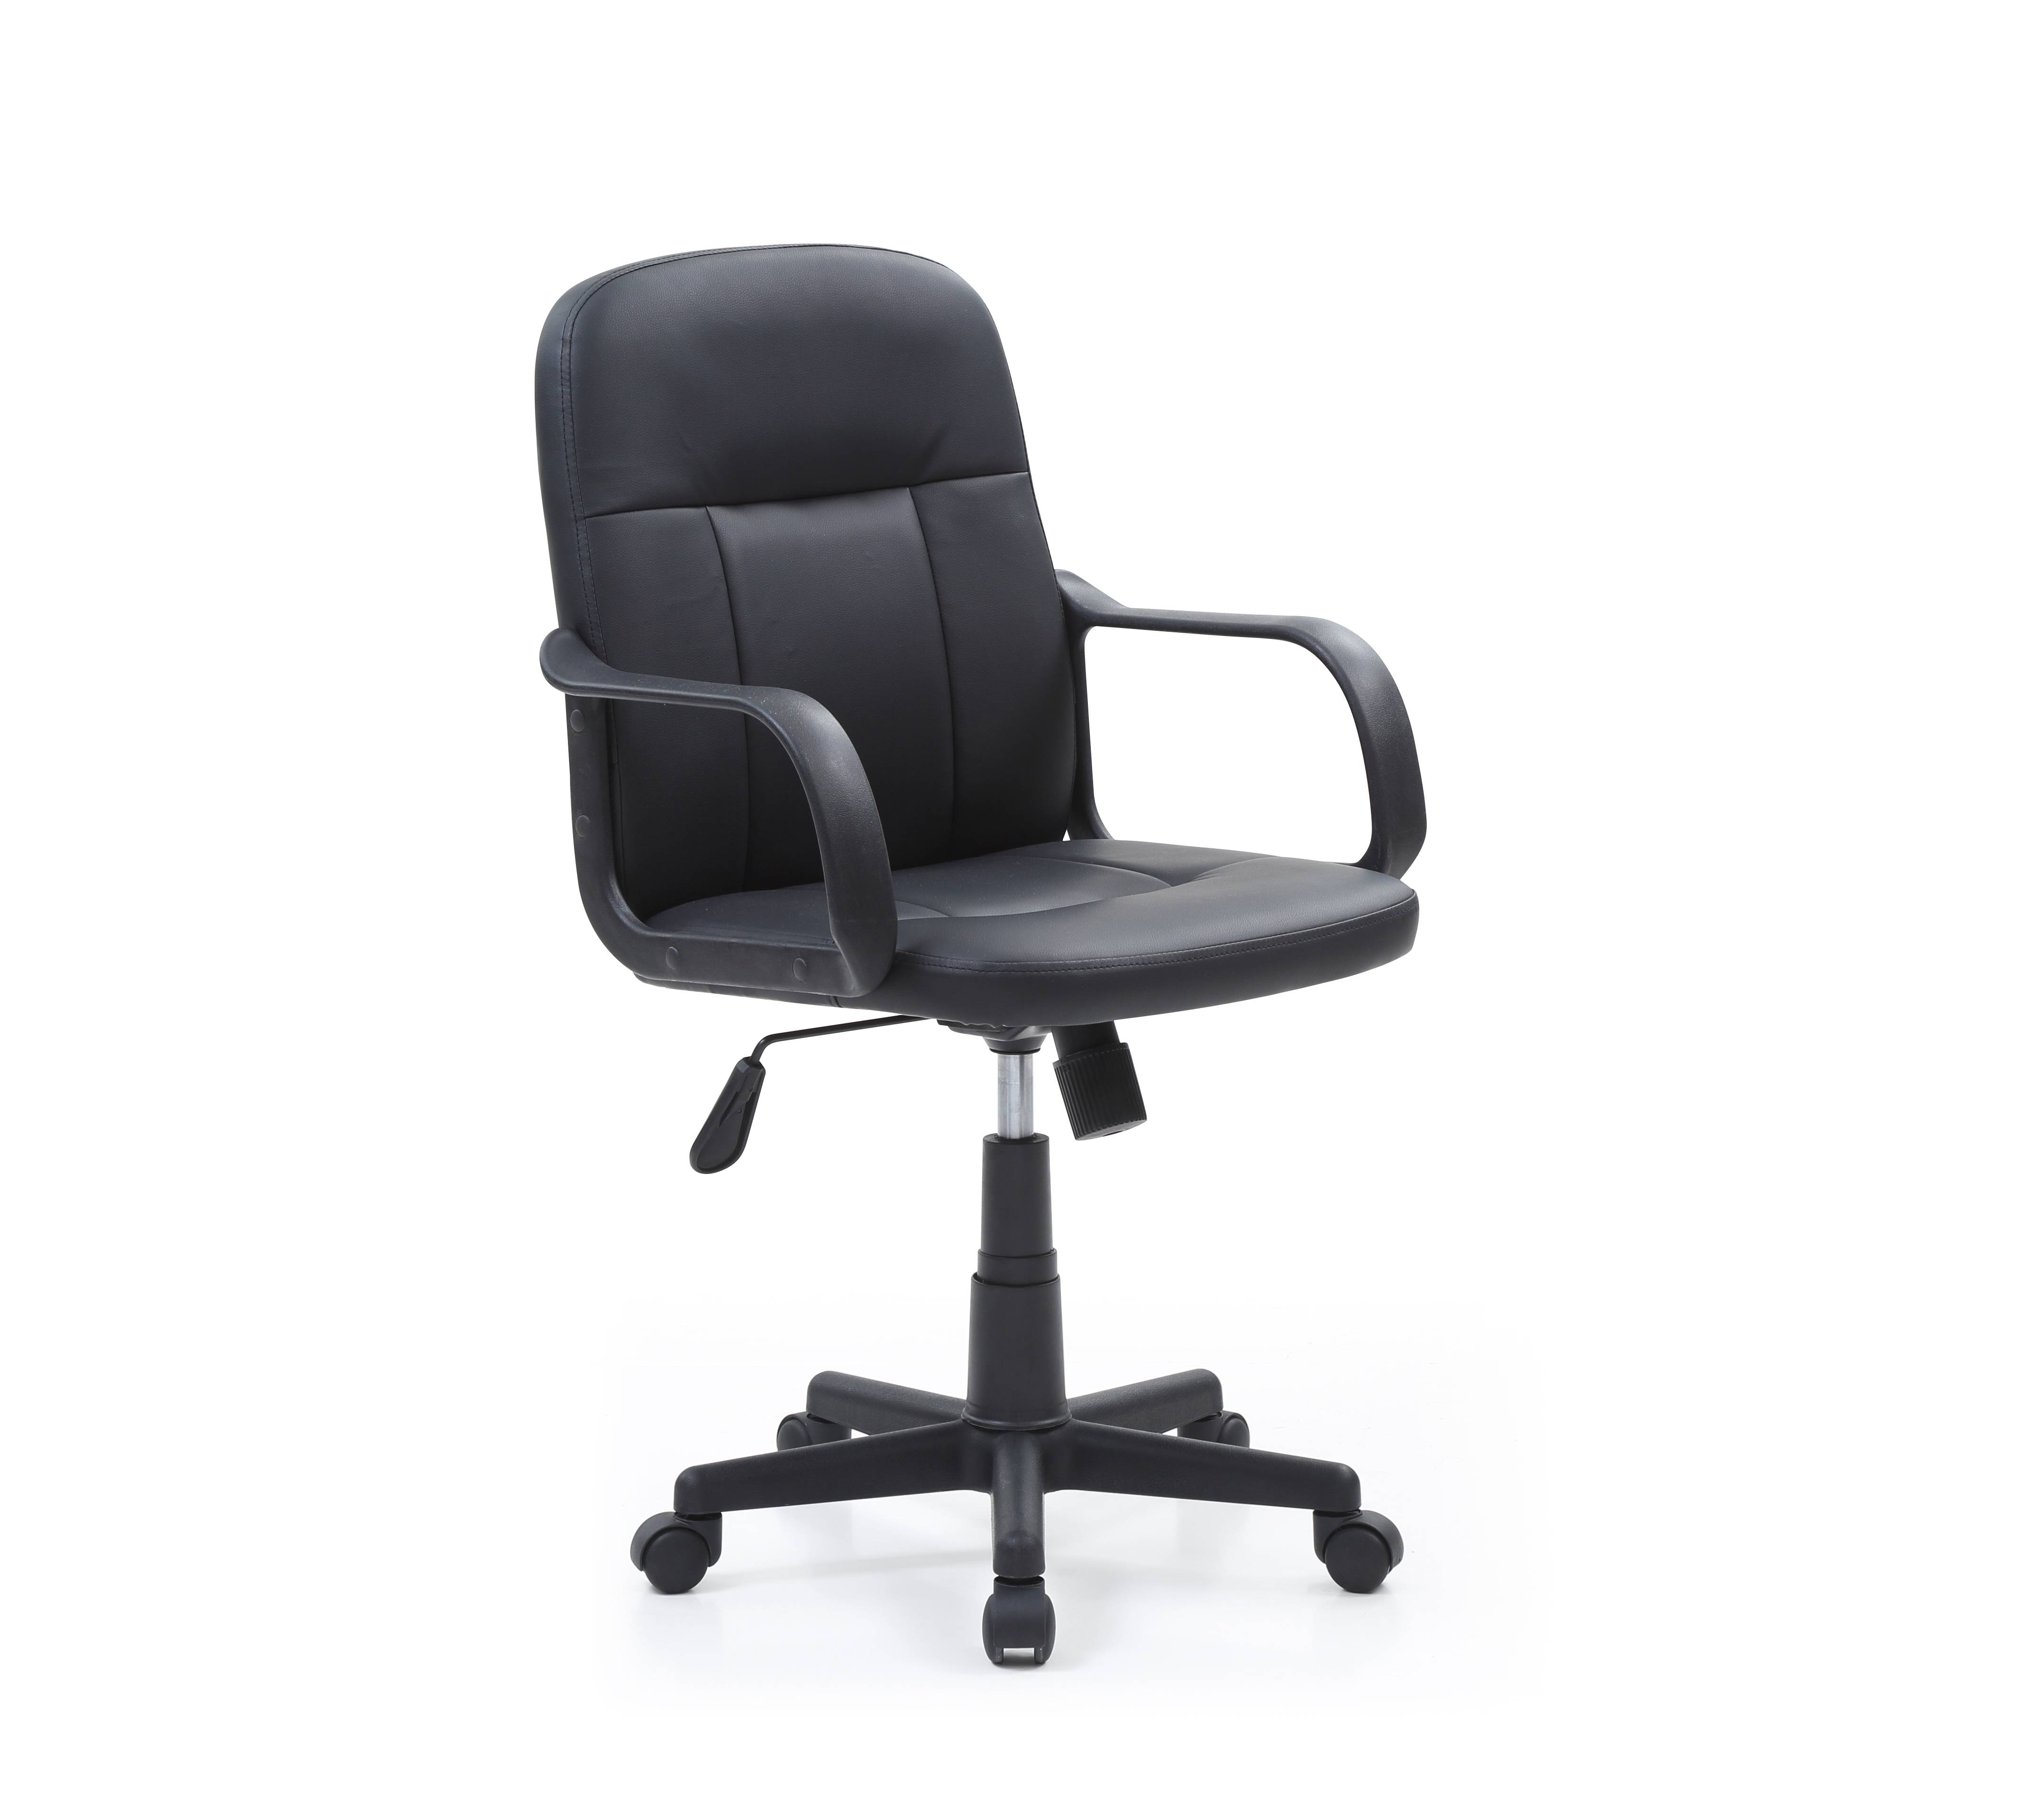 Mid Back, Adjustable Height, Swiveling Office Chair, Black